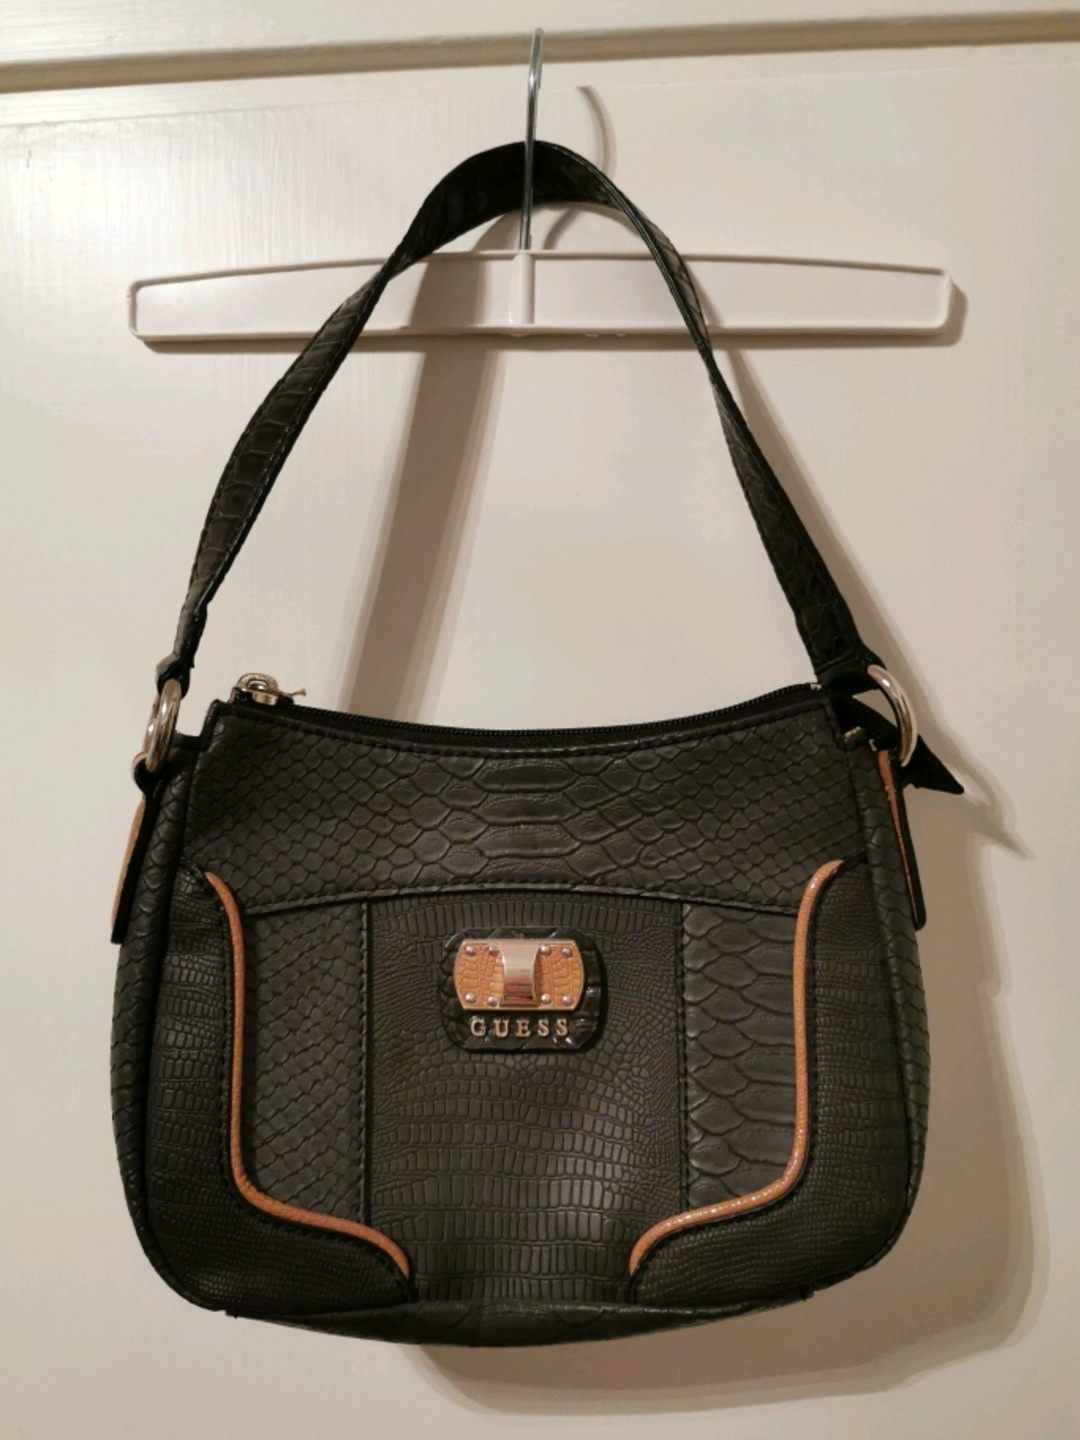 Women's bags & purses - GUESS photo 1